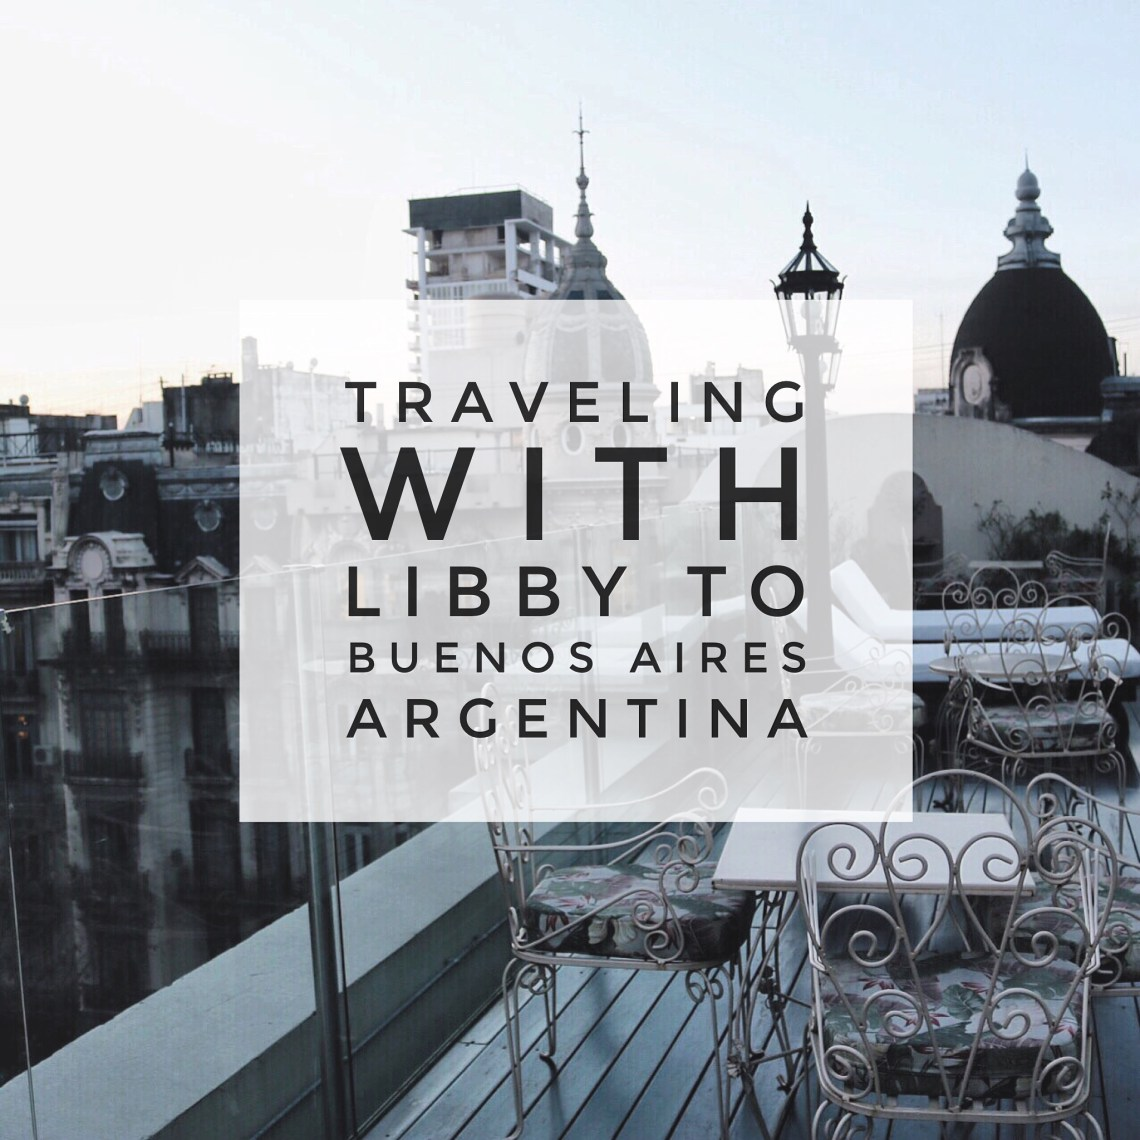 life with libby buenos aires